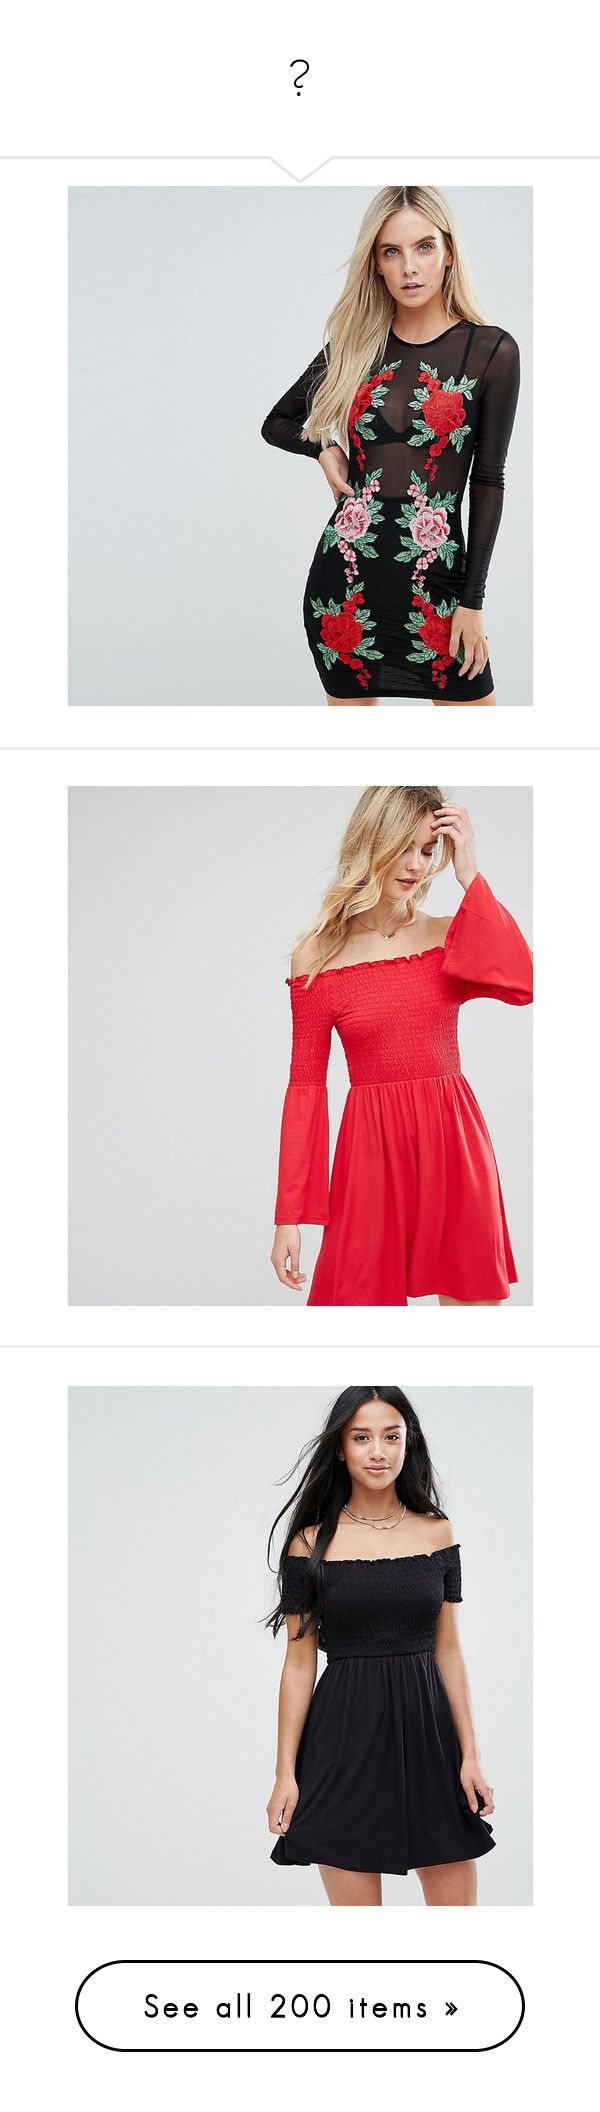 """""""👗"""" by theowneroftheelderwand ❤ liked on Polyvore featuring dresses, black, petite cocktail dress, bodycon party dresses, body con dress, mesh bodycon dresses, petite party dresses, red, short red dress and red ruched dress"""